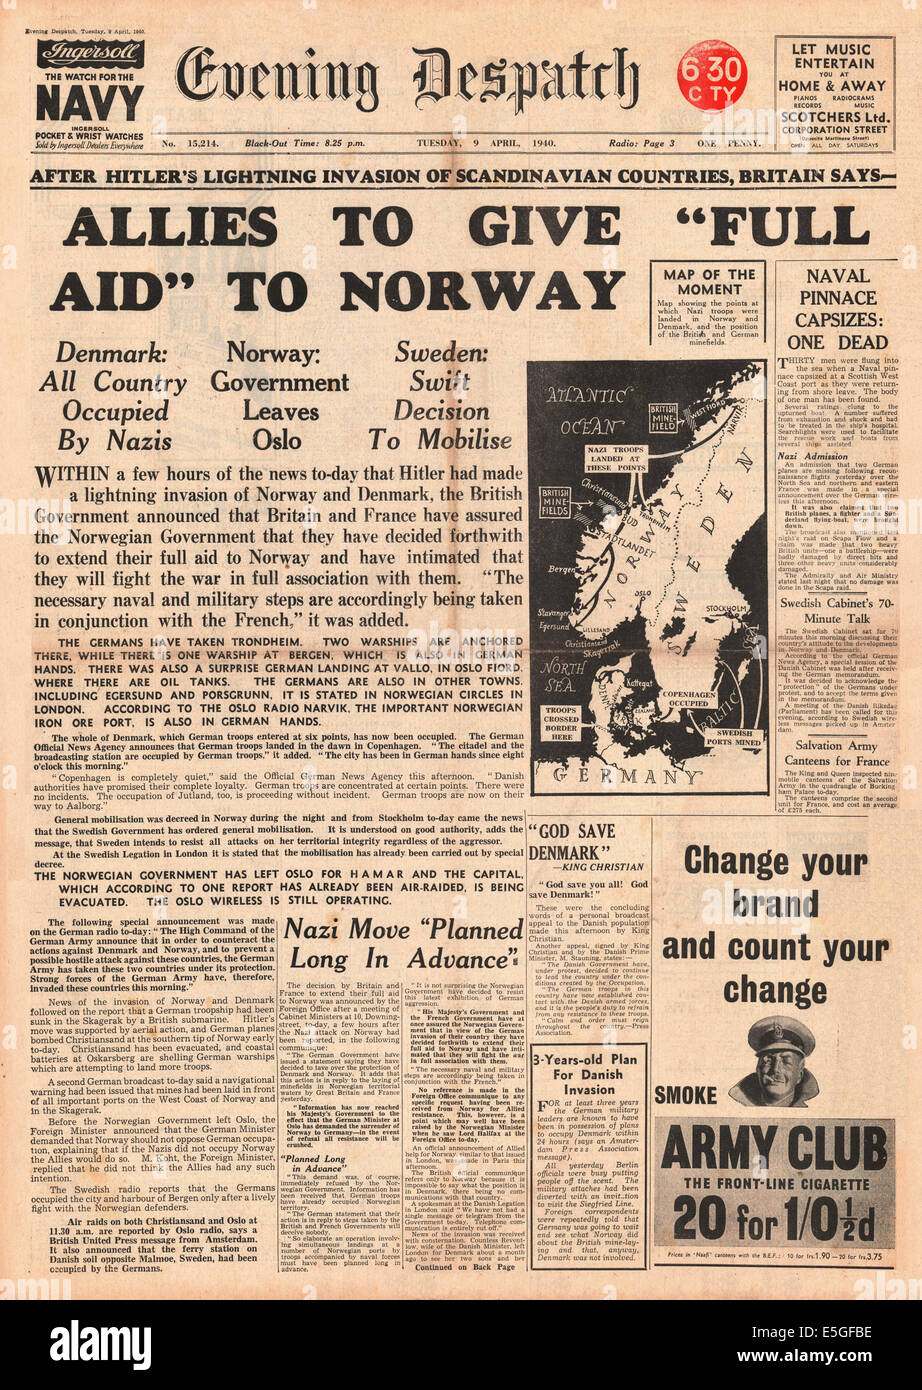 http://c8.alamy.com/comp/E5GFBE/1940-evening-despatch-front-page-reporting-the-german-invasion-of-E5GFBE.jpg